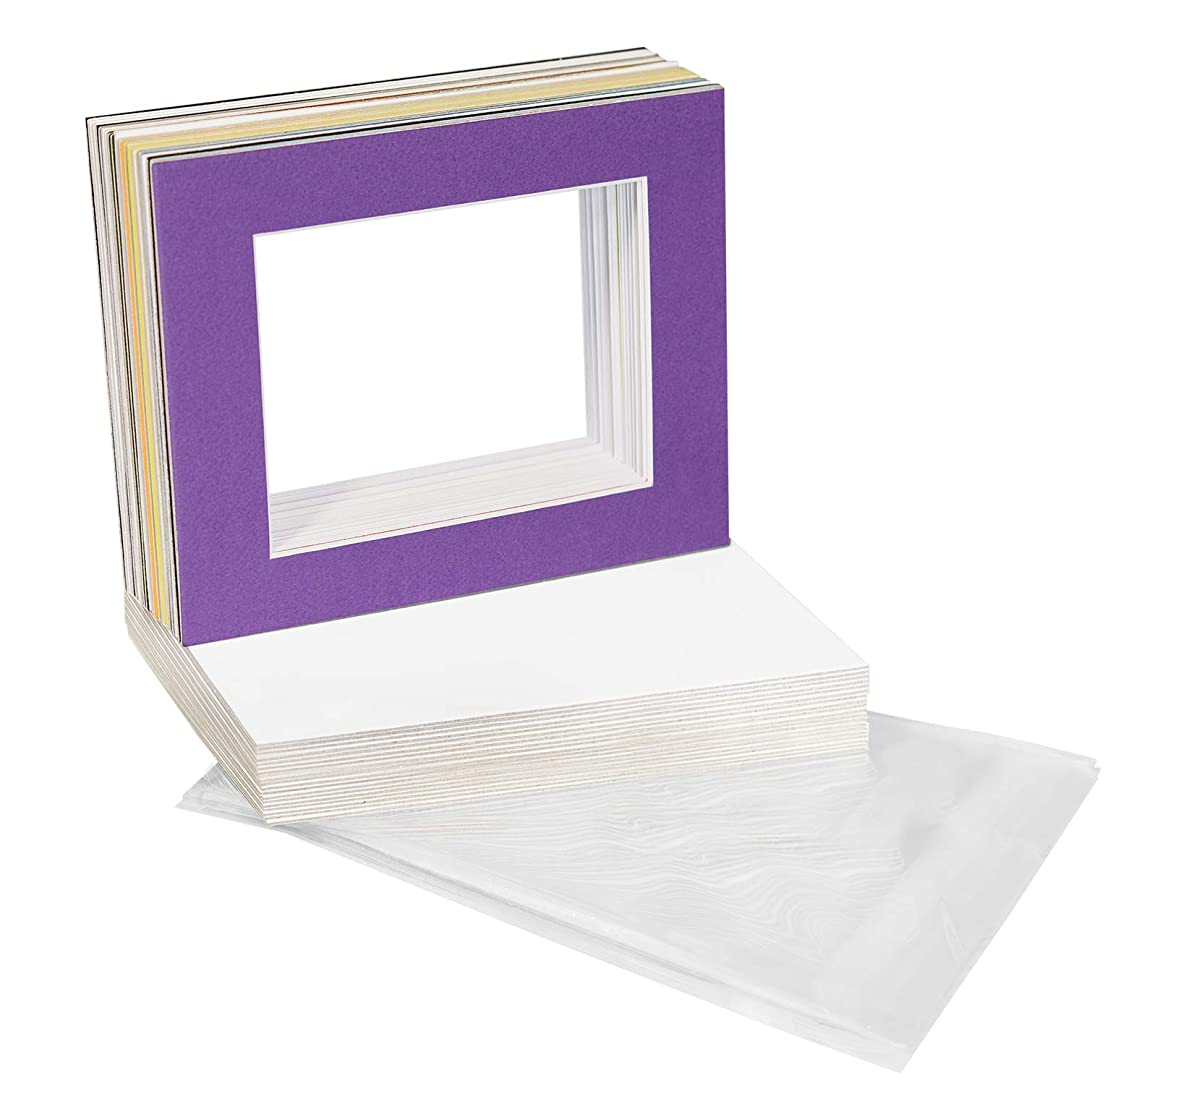 Golden State Art, Pack of 25 Mixed Colors Pre-Cut 16x20 Picture Mat for 11x14 Photo with White Core Bevel Cut Mattes Sets. Includes 25 High Premier Acid Free Matts & 25 Backing Board & 25 Clear Bags